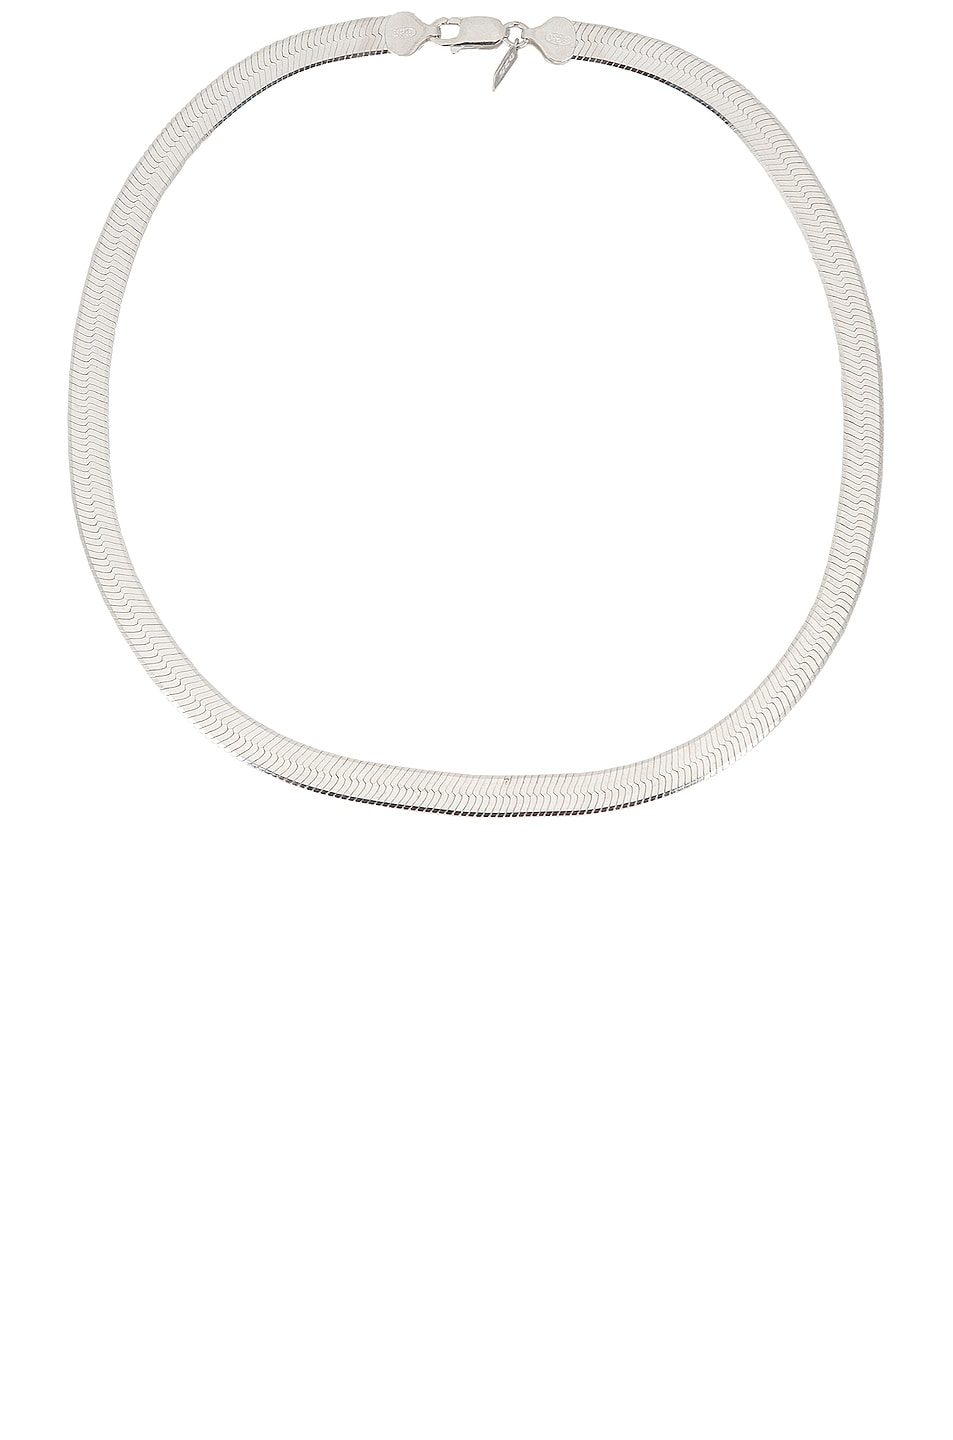 Image 1 of Loren Stewart XL Herringbone Necklace in Sterling Silver